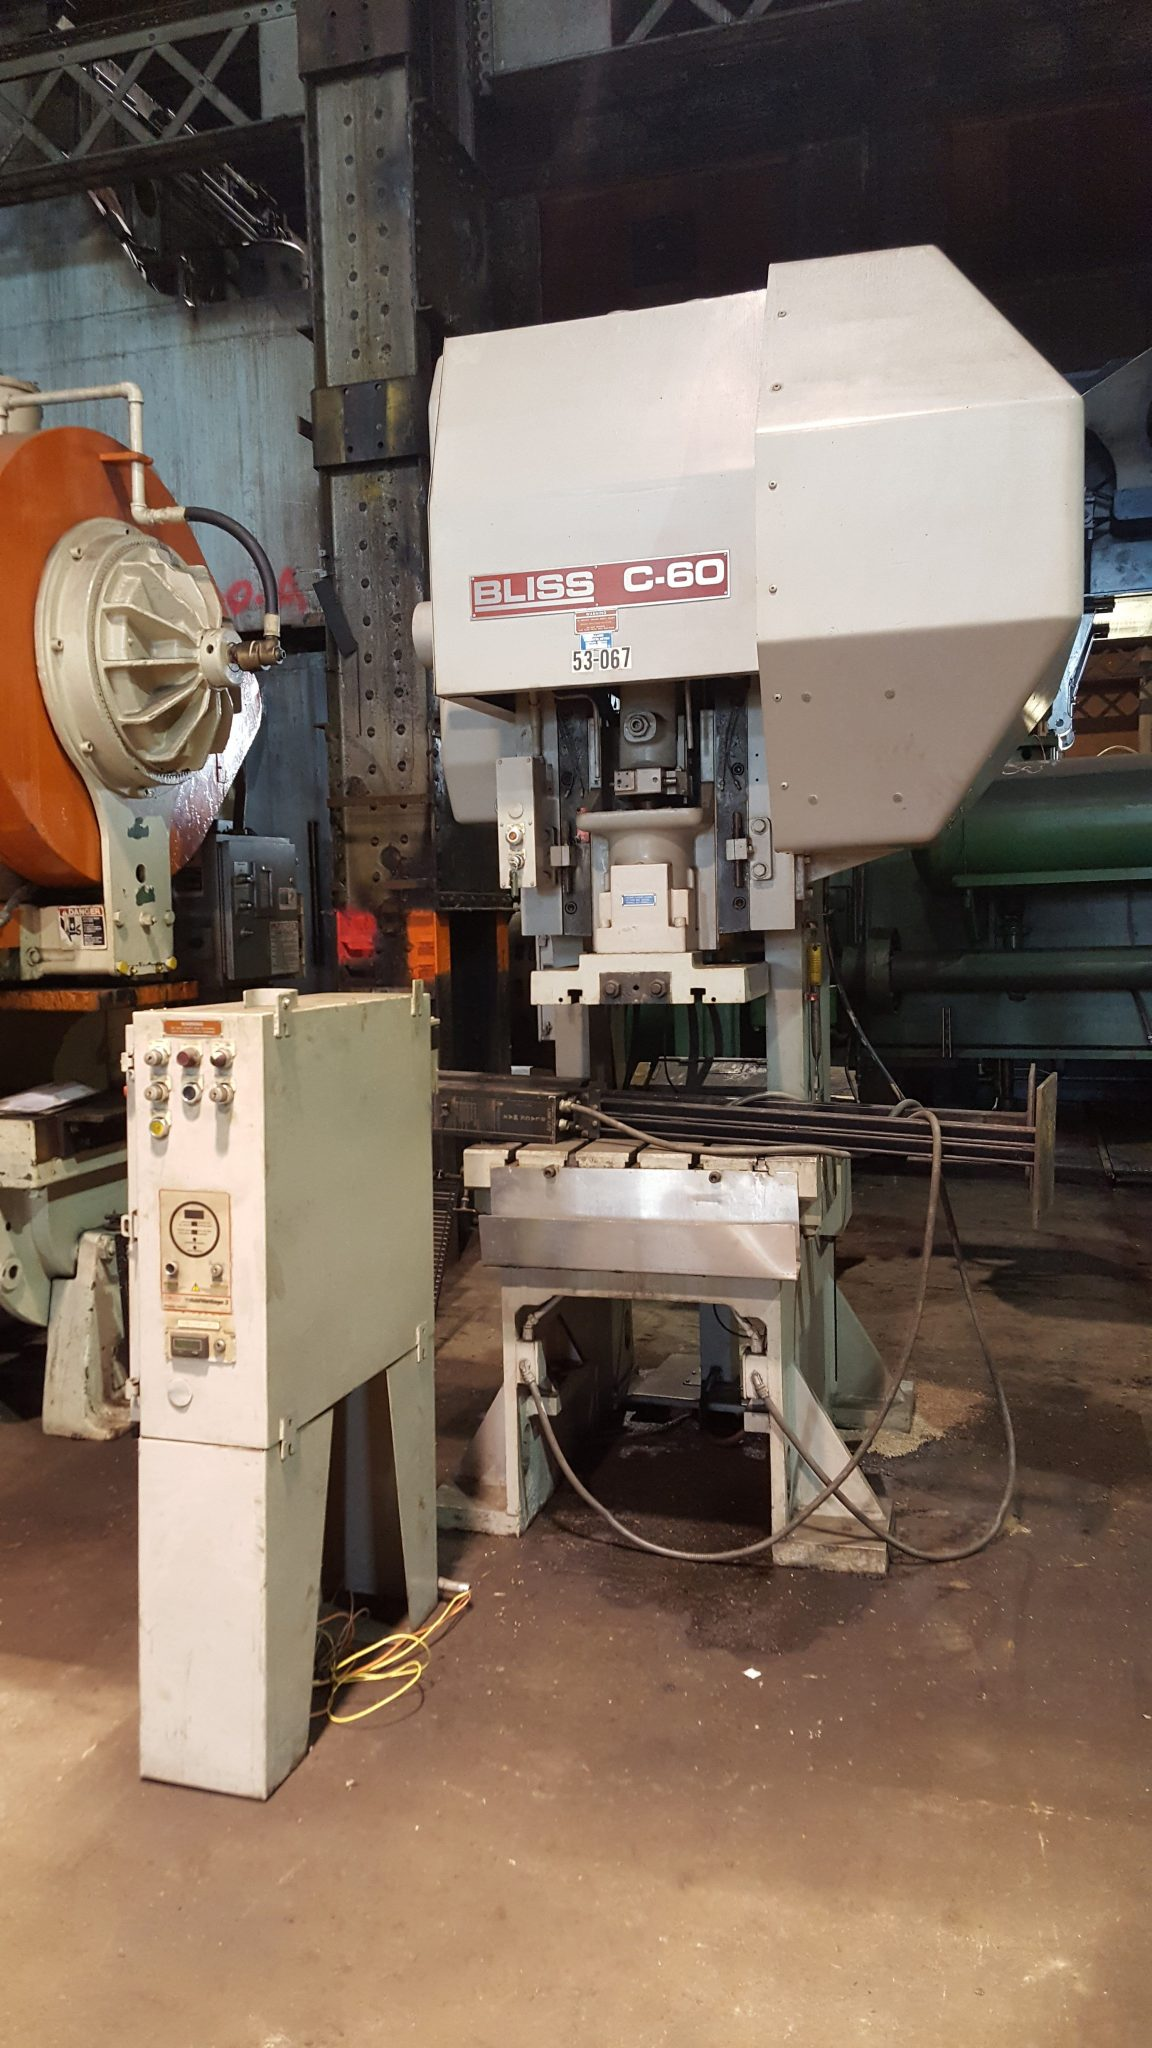 60 Ton Capacity Bliss C 60 Press For Sale Call 616 200 4308